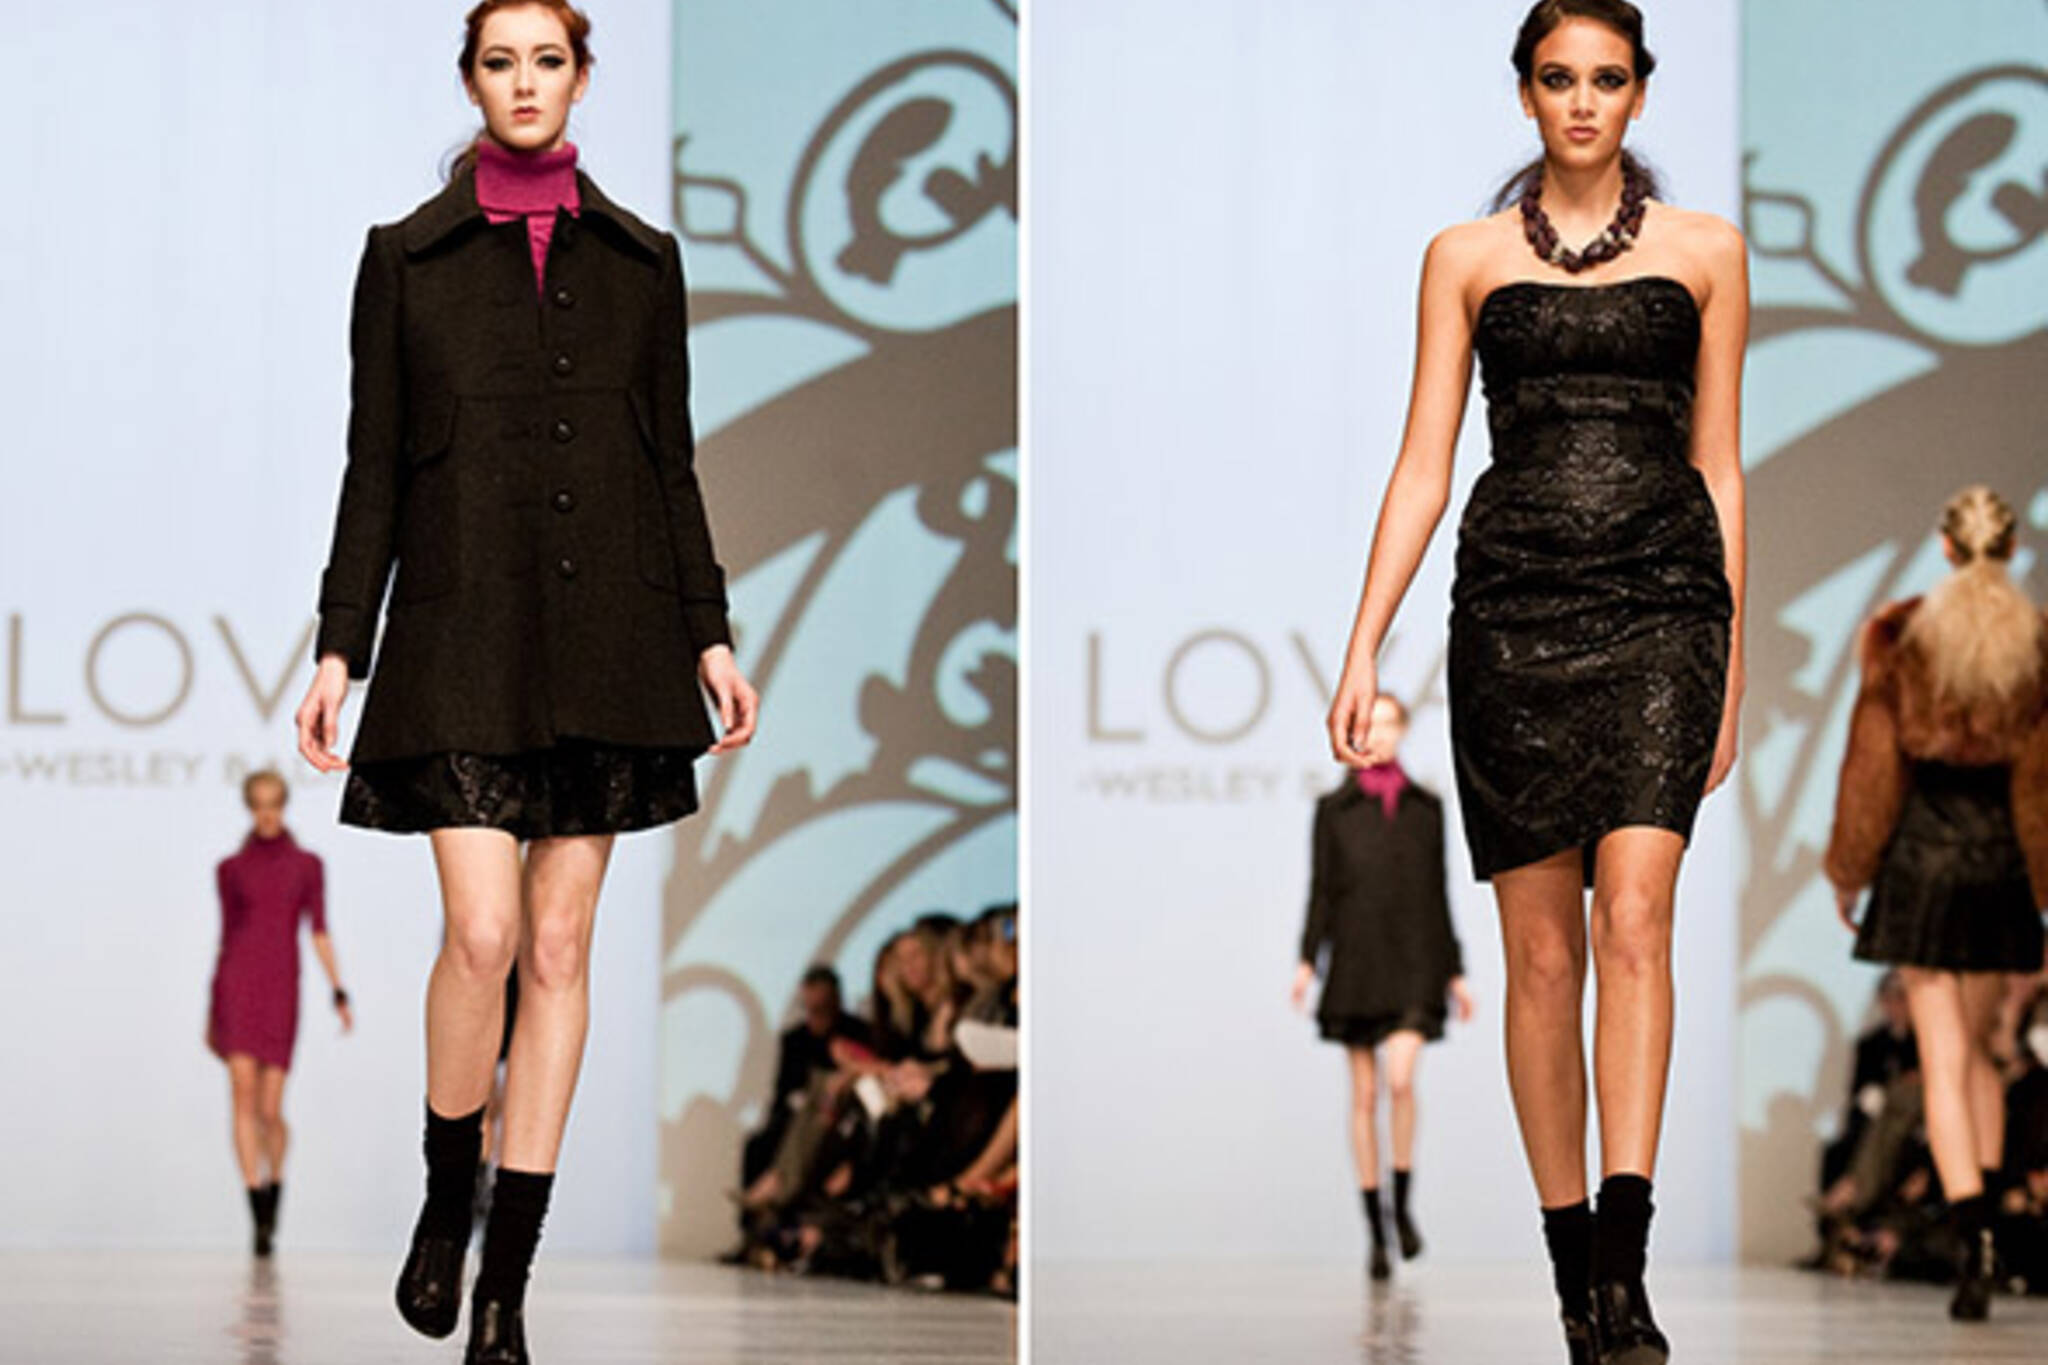 Lovas Toronto Fashion Week